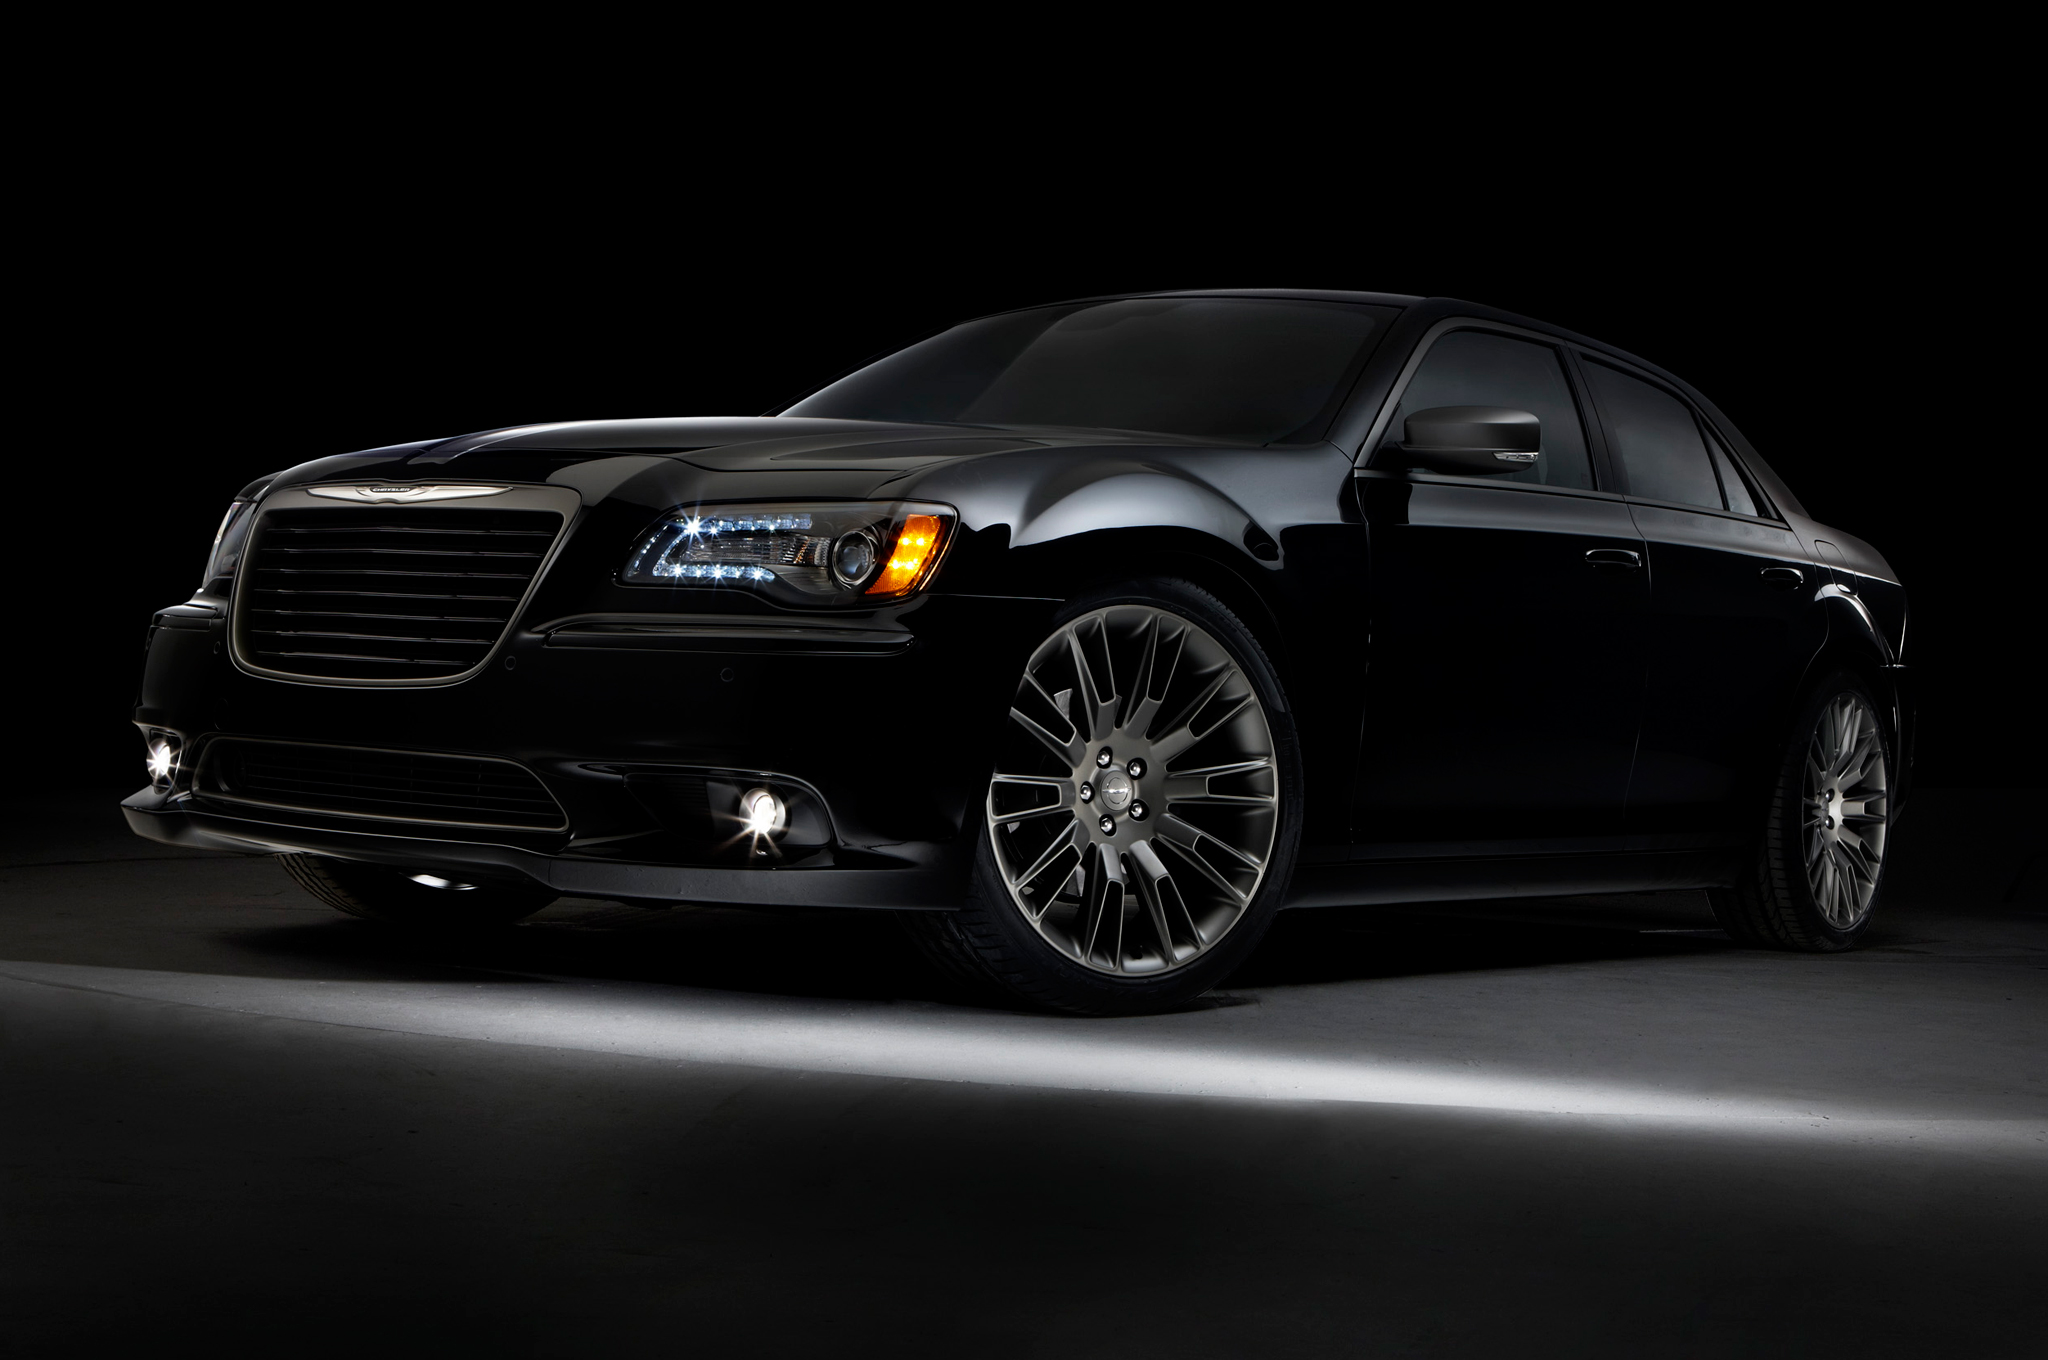 2014 Chrysler 300 #2